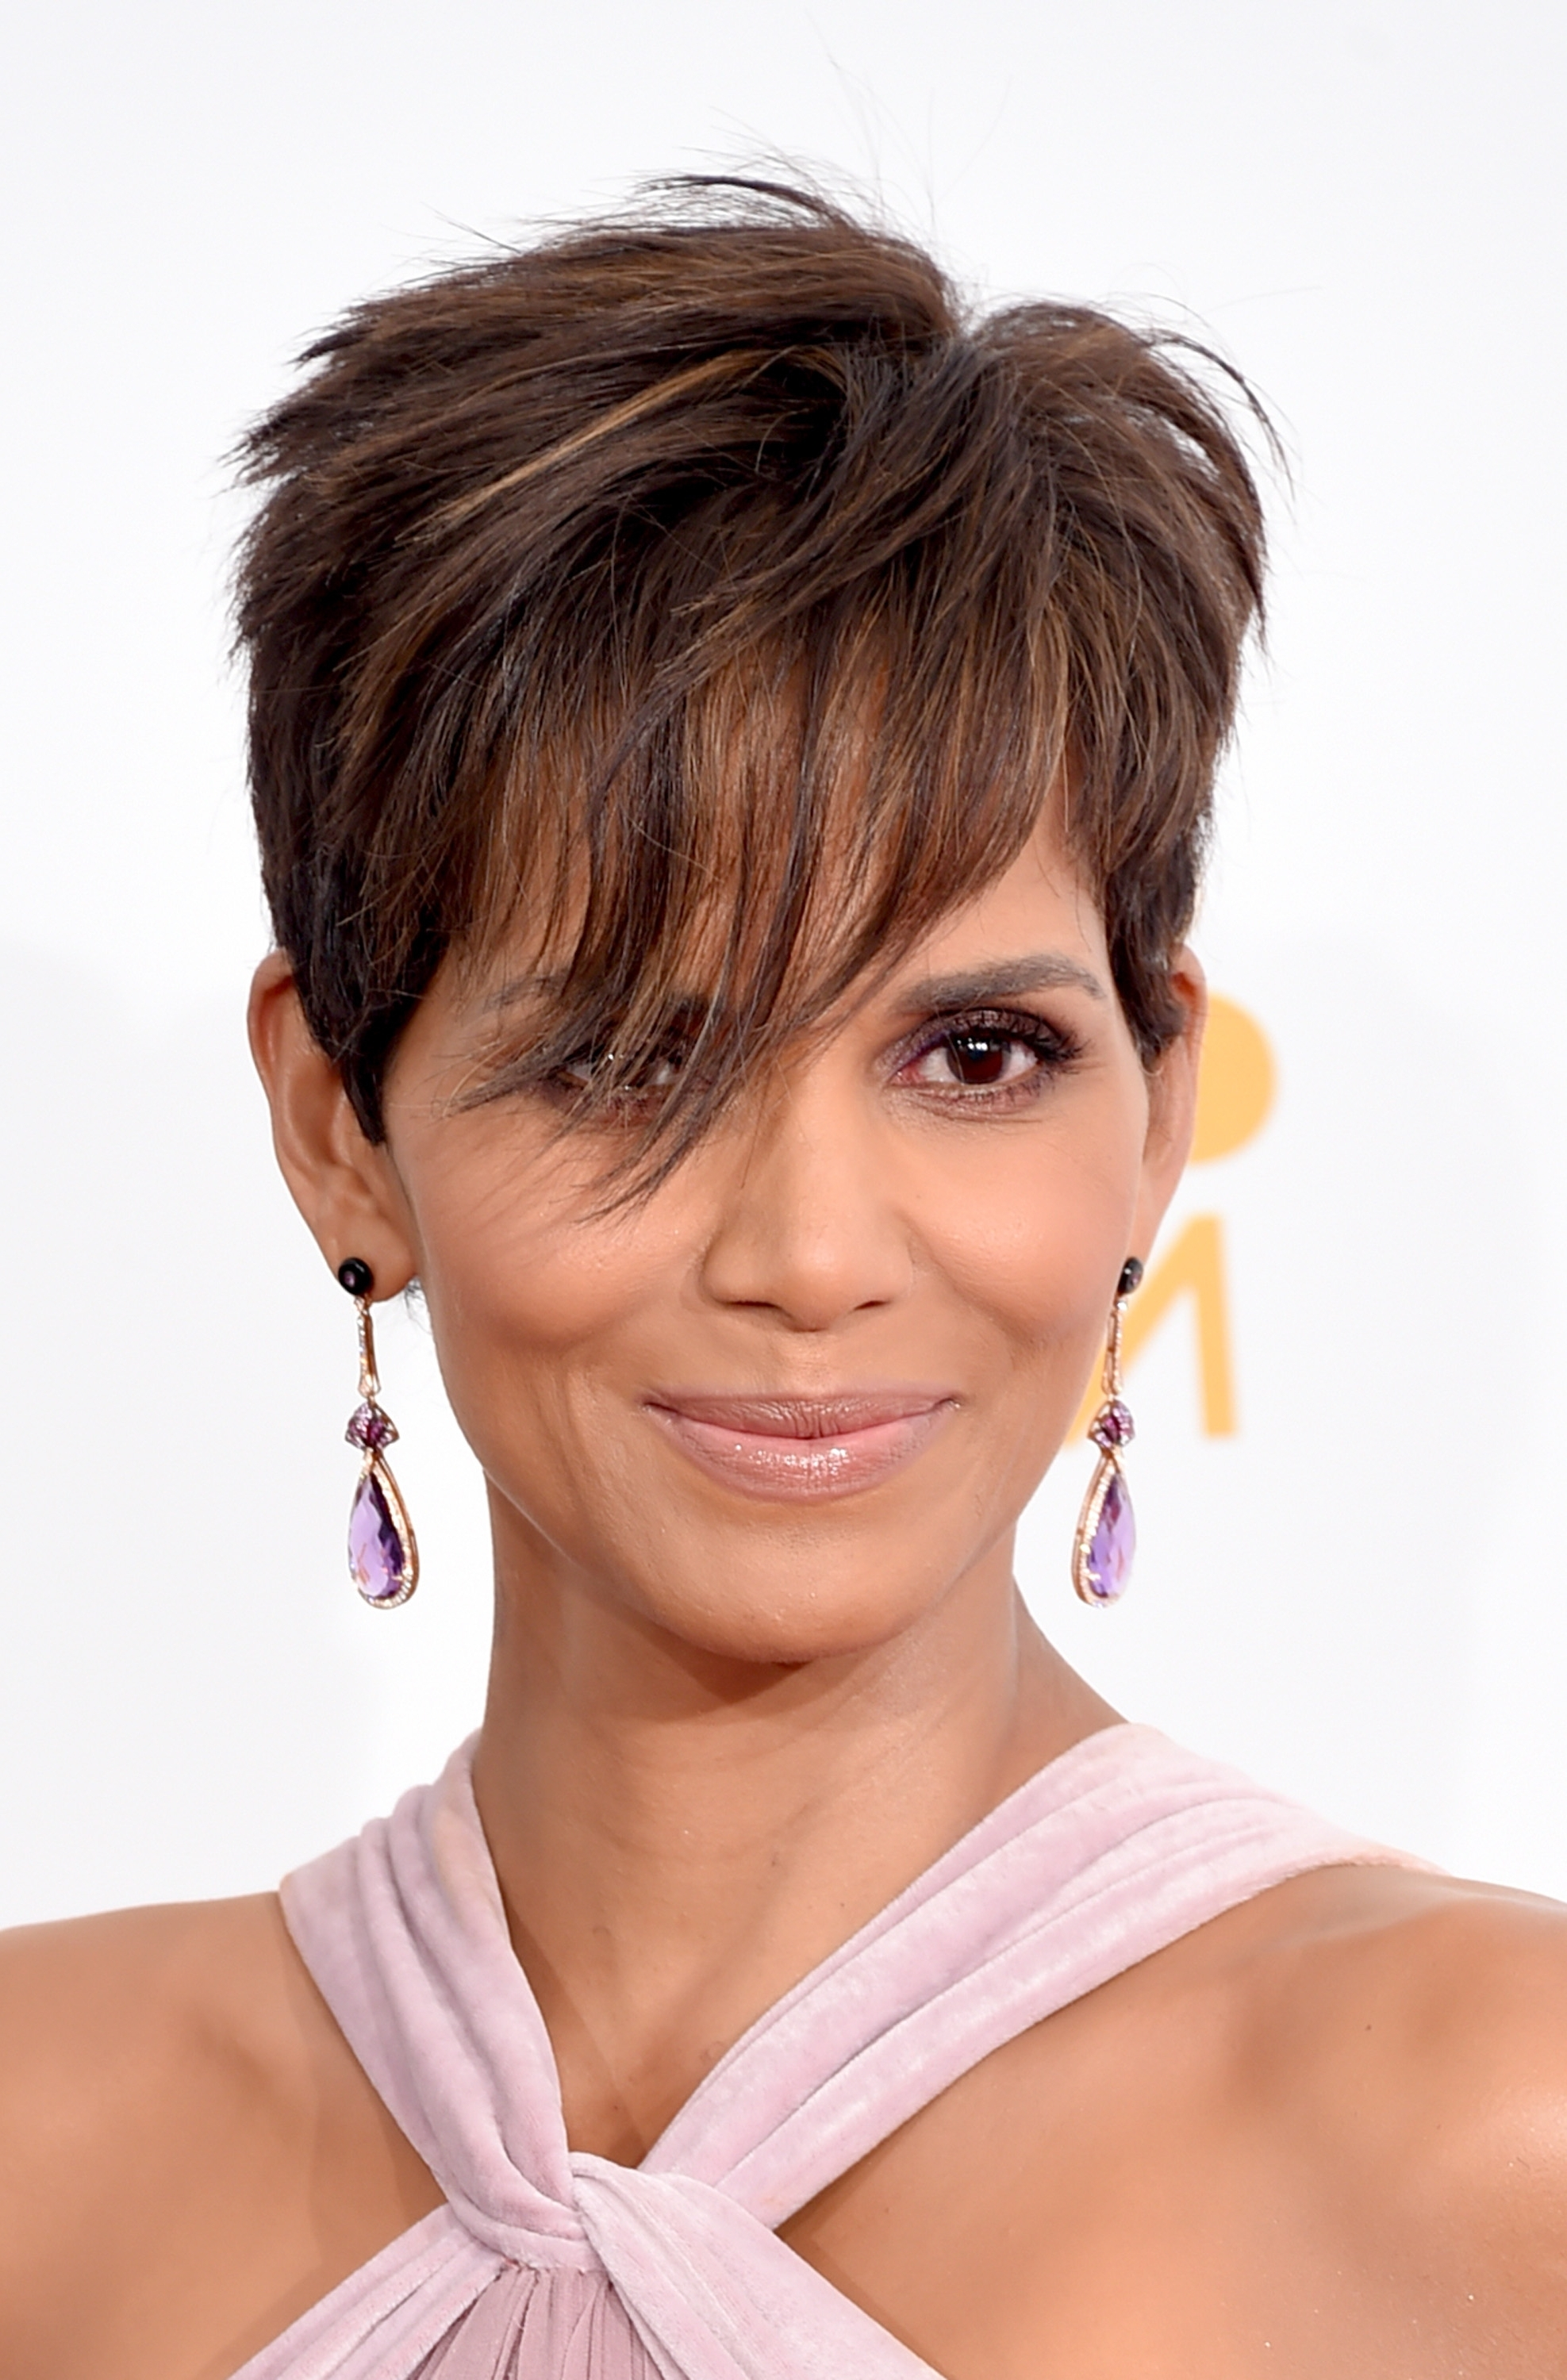 View Photos Of Pixie Hairstyles With Long Fringe Showing 11 Of 15